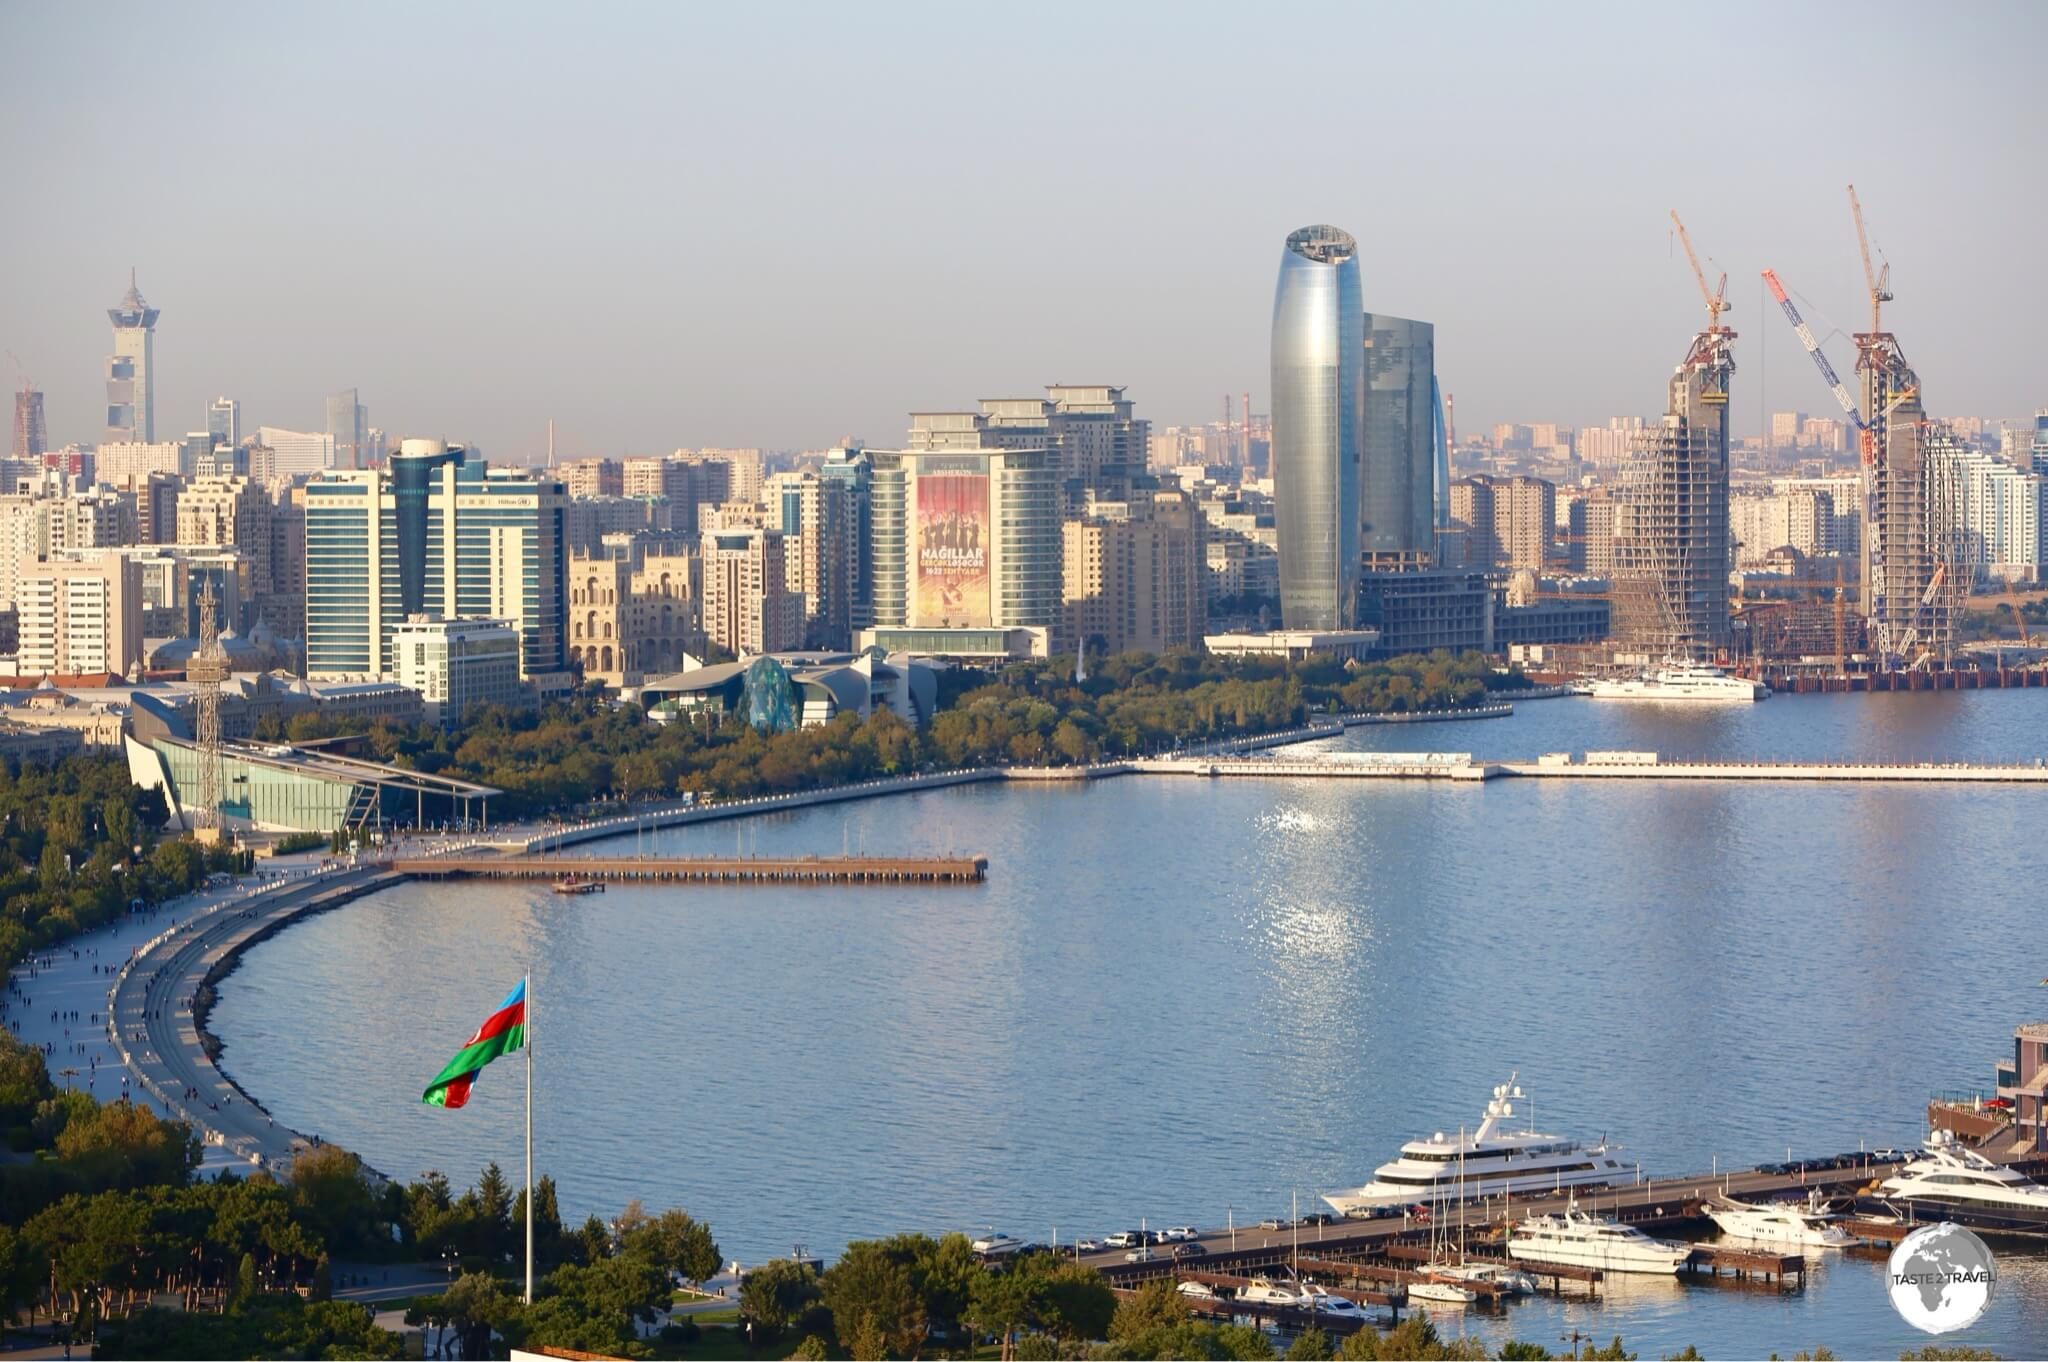 A view of bustling Baku, the capital of Azerbaijan.